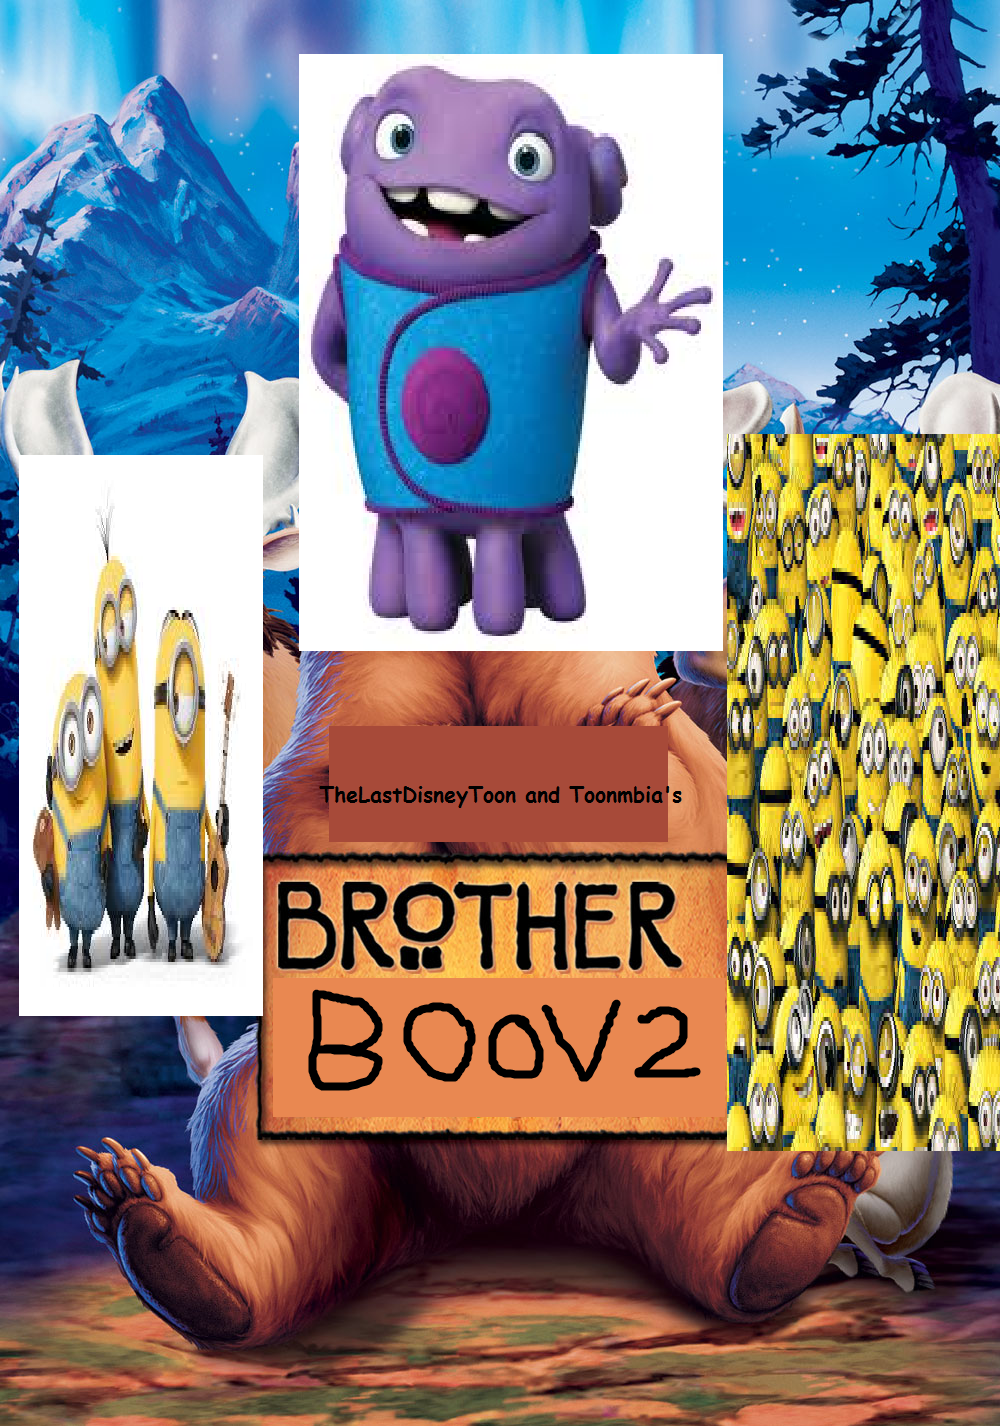 Brother Boov 2 (TheLastDisneyToon and Toonmbia Style)